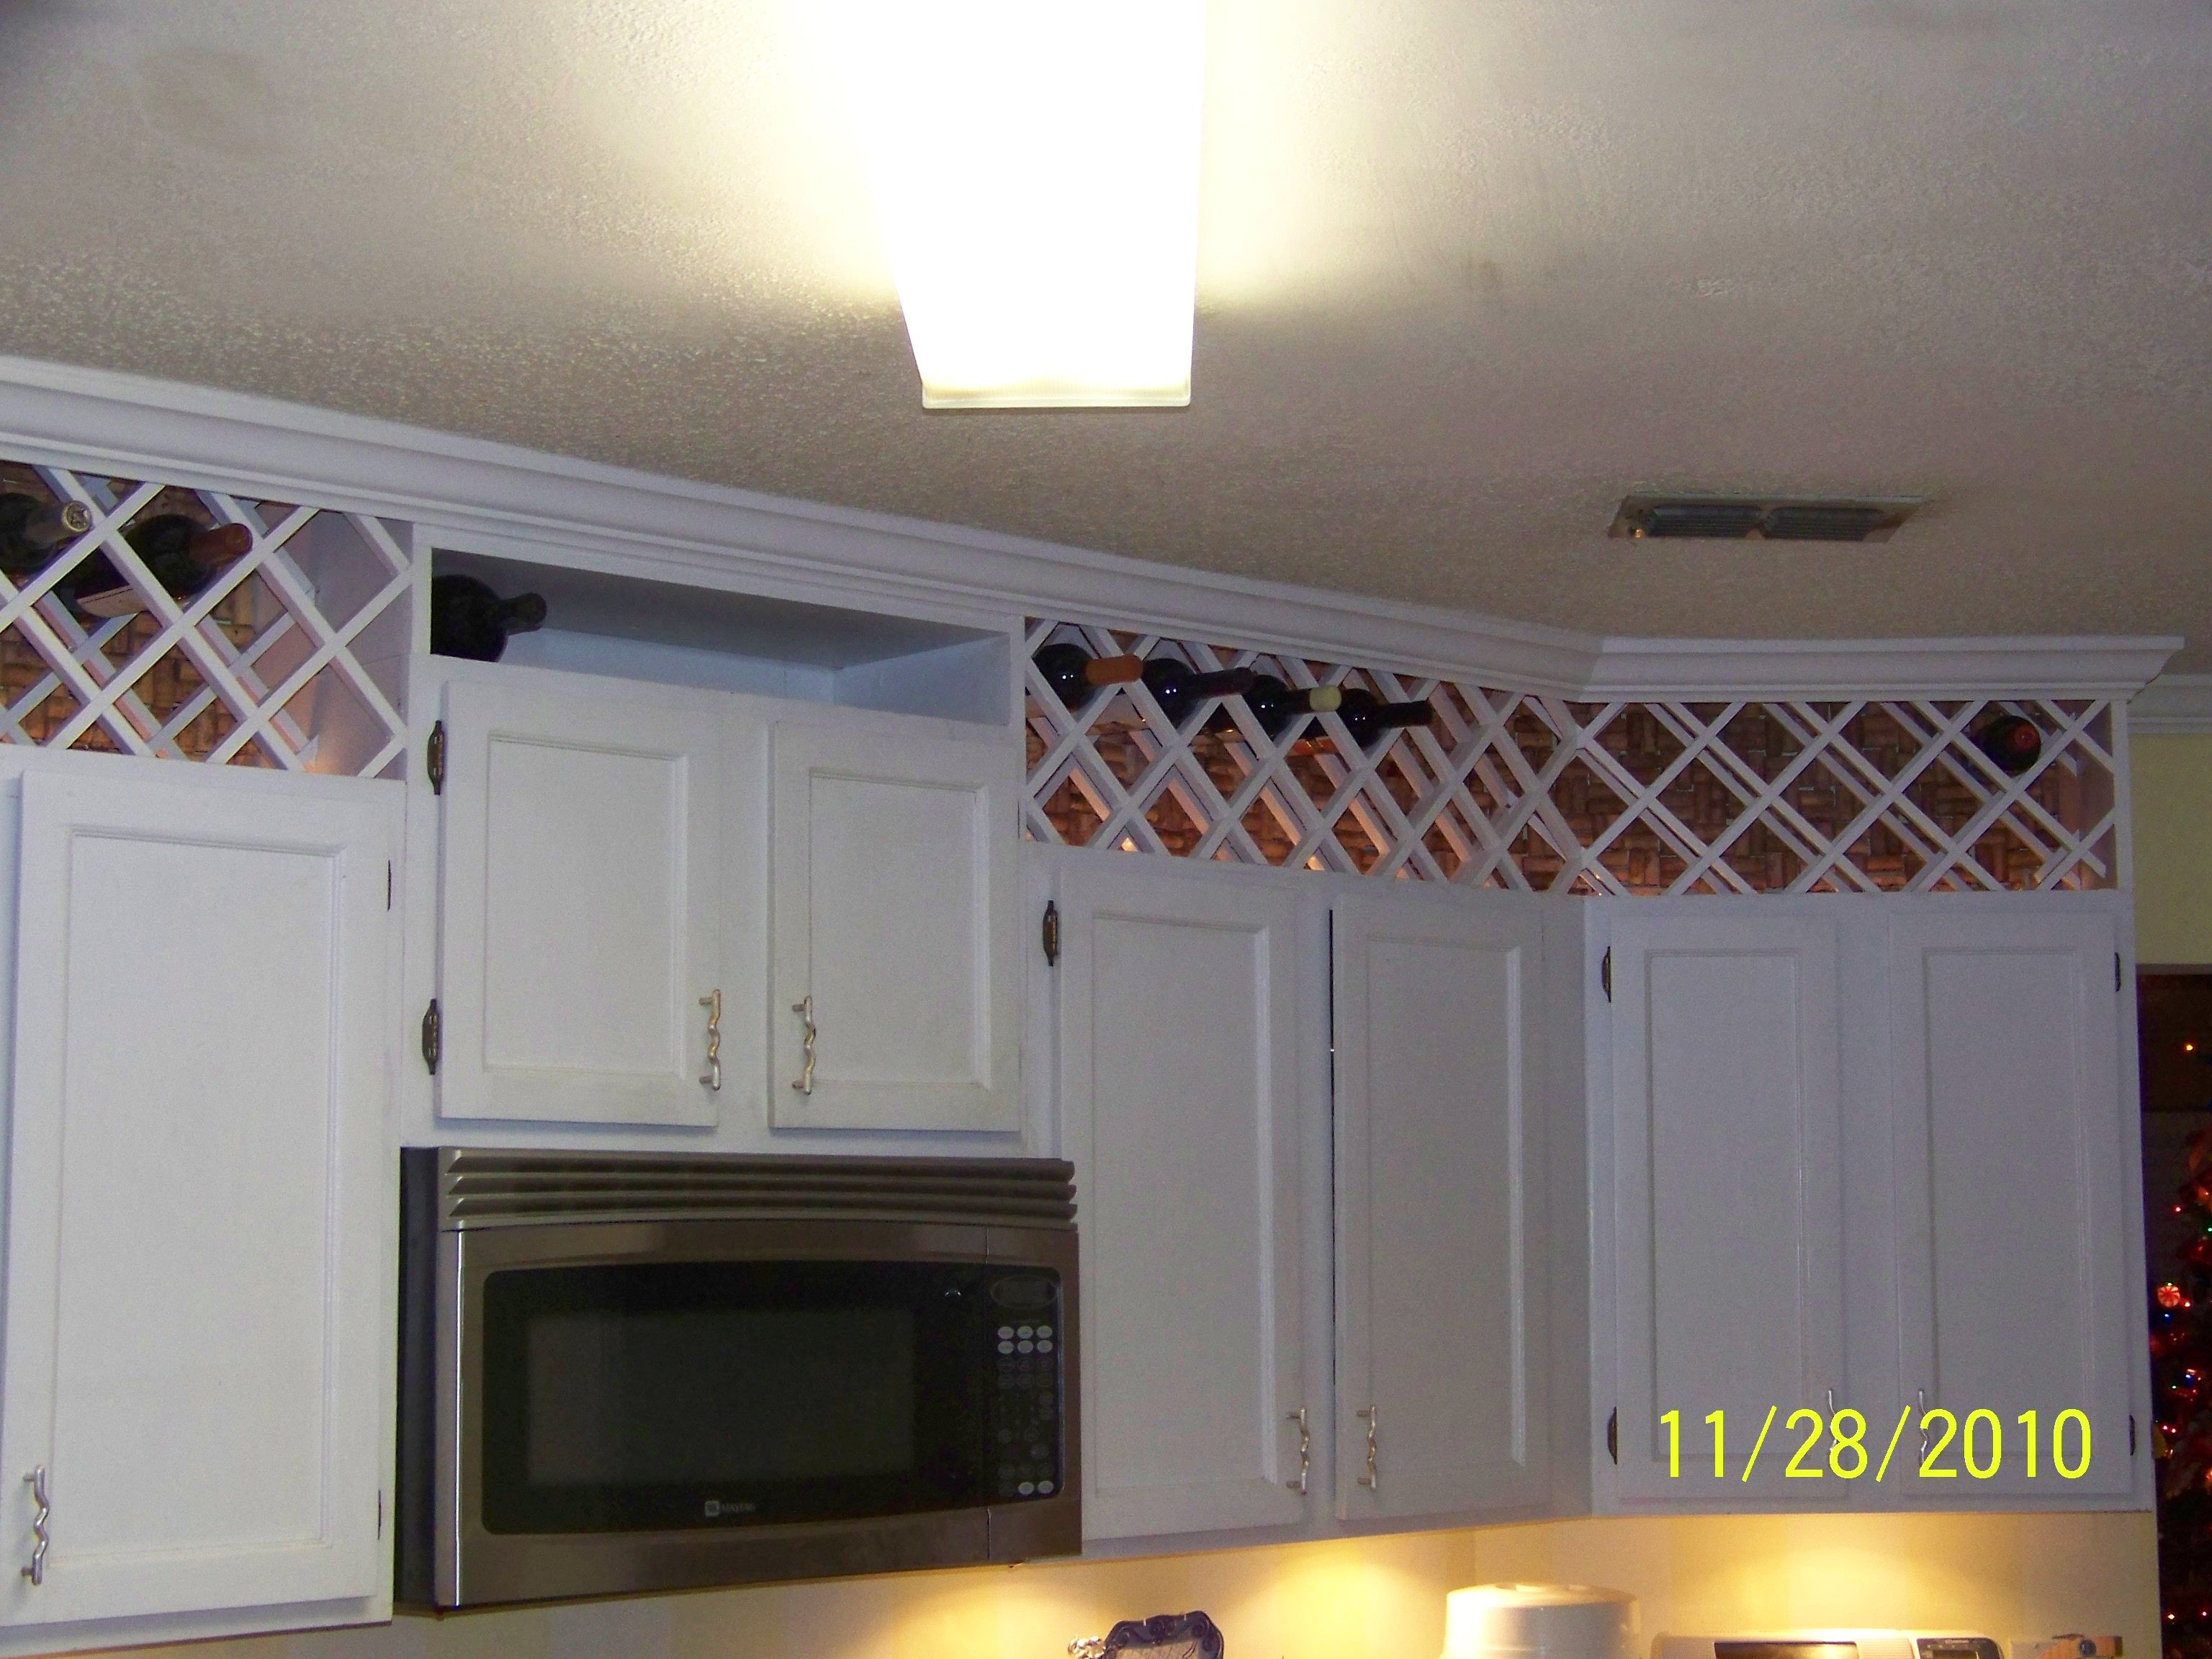 Built in wine racks for kitchen cabinets - Use The Space Above The Kitchen Cabinets To Create A Wine Rack